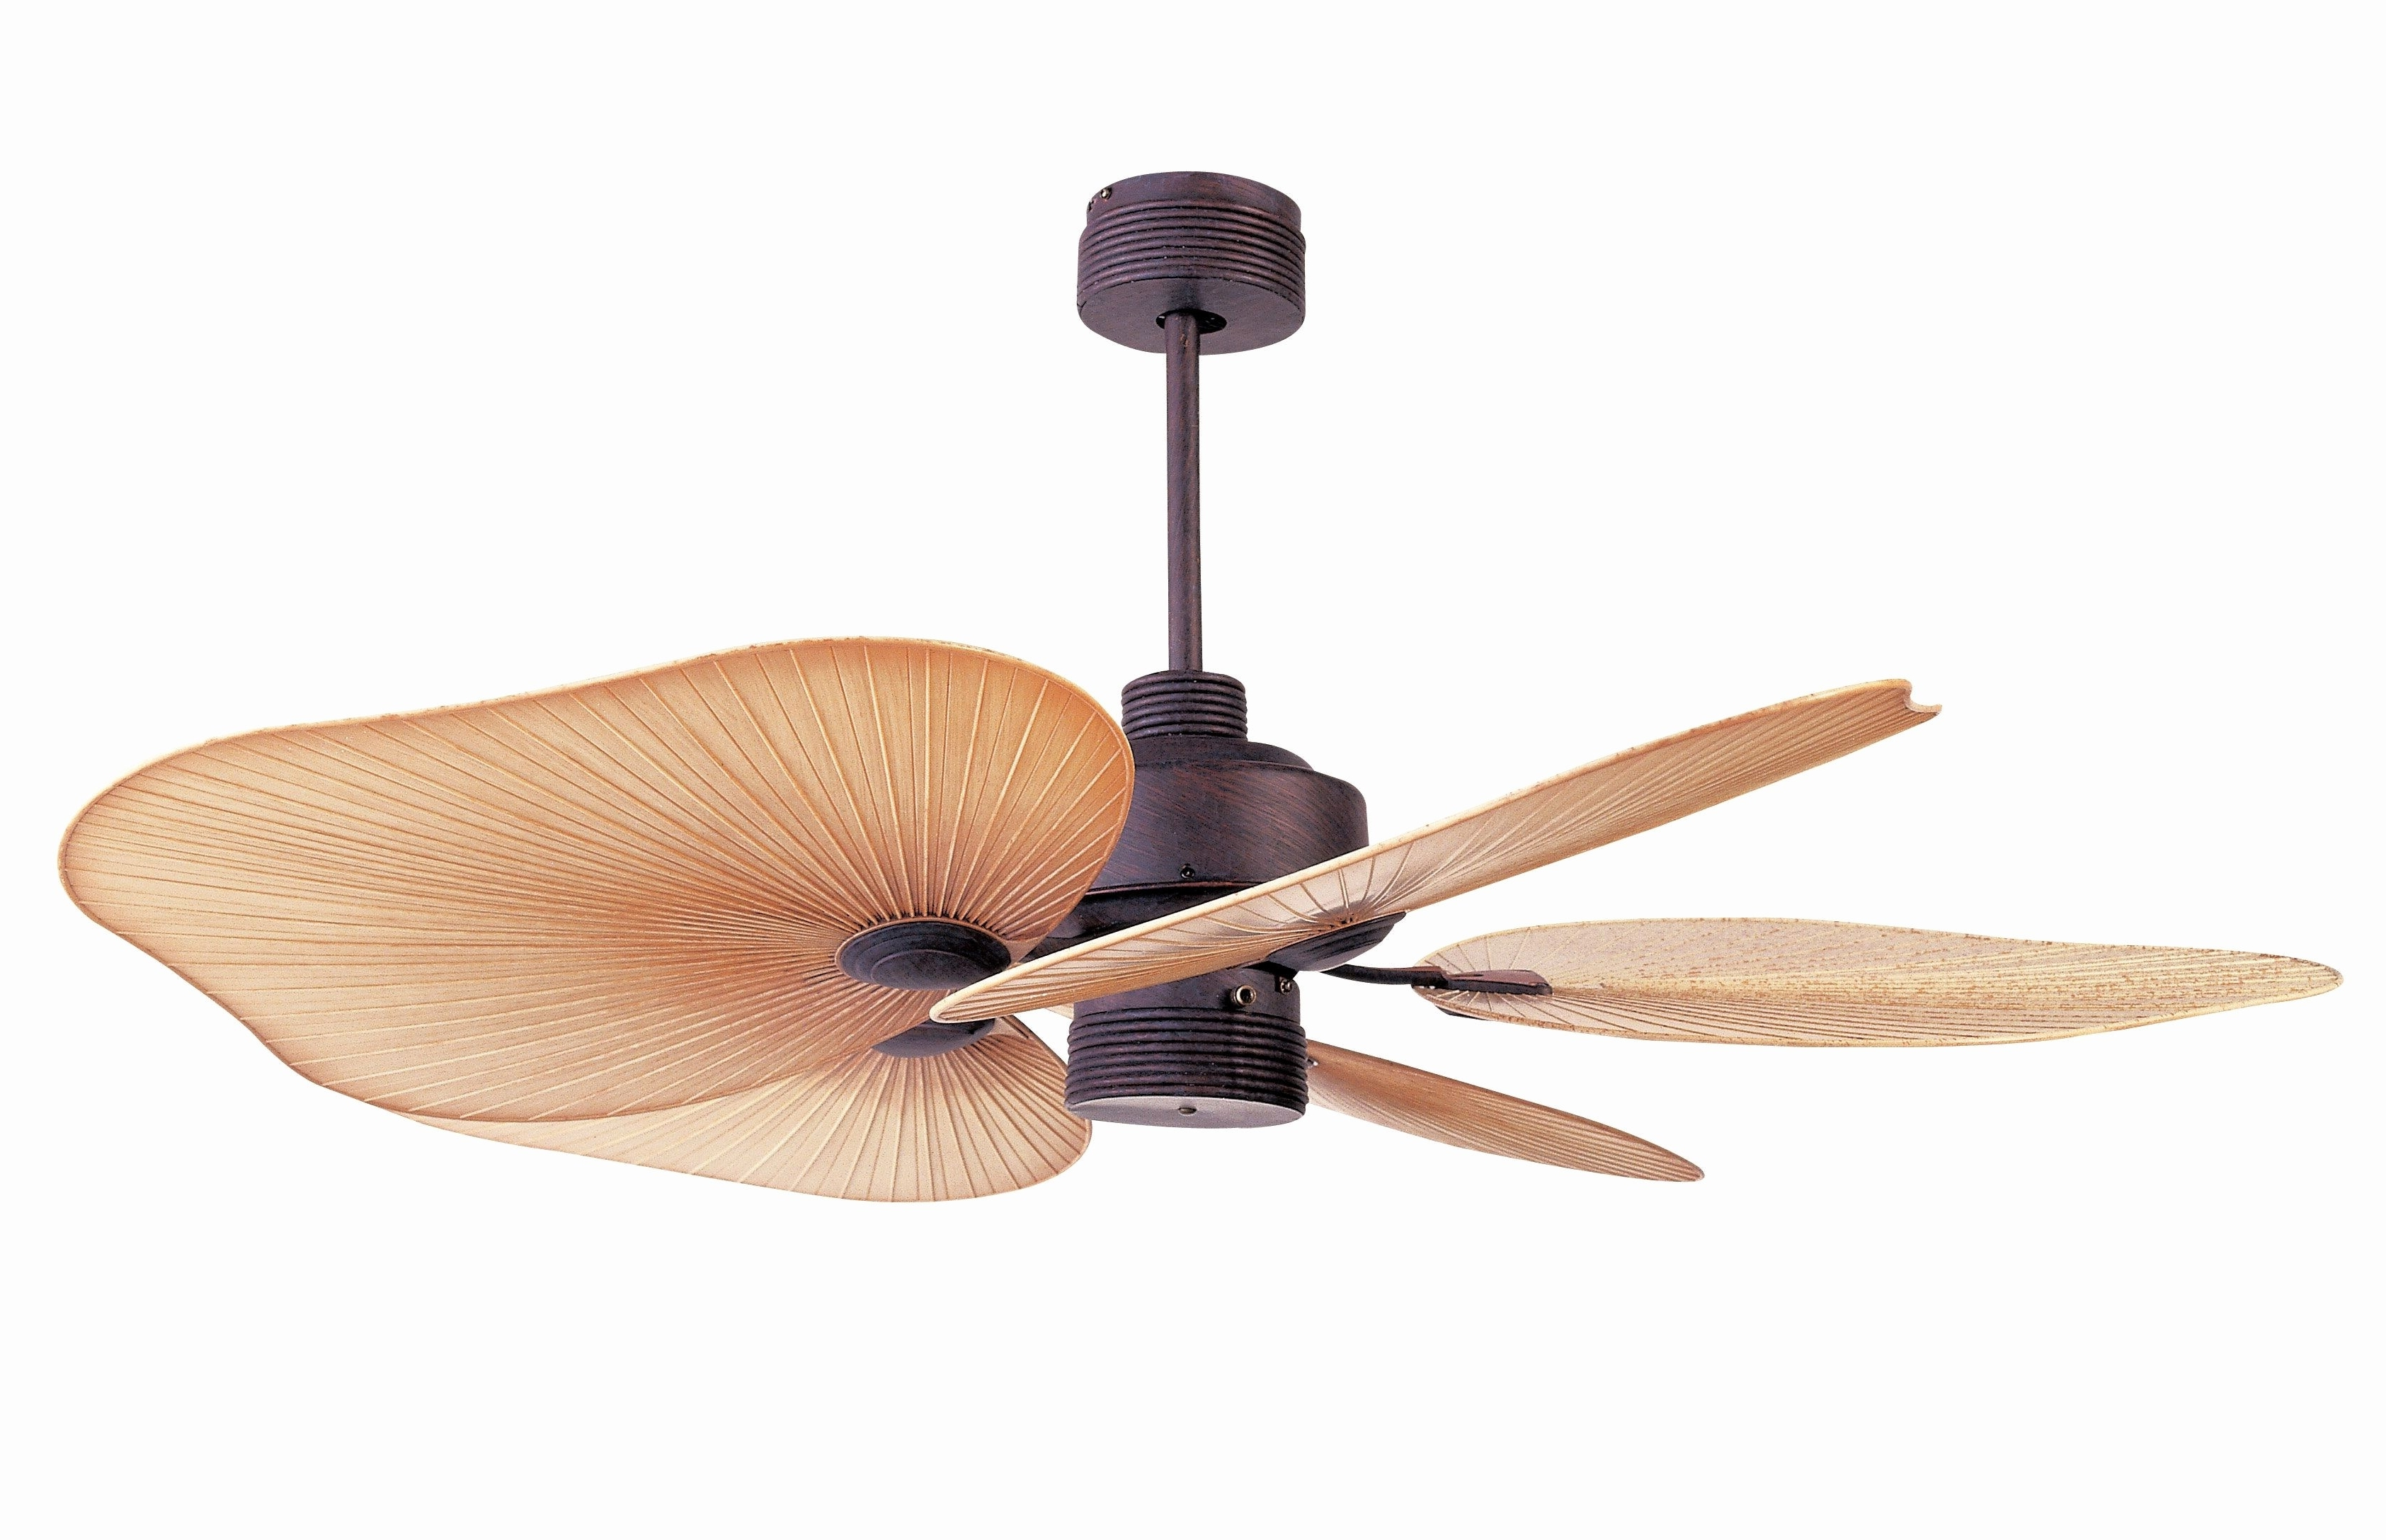 Popular Outdoor Ceiling Fans For Barns Intended For White Barn Ceiling Fans Luxury Tropical Ceiling Fans Ideas Barn (View 18 of 20)